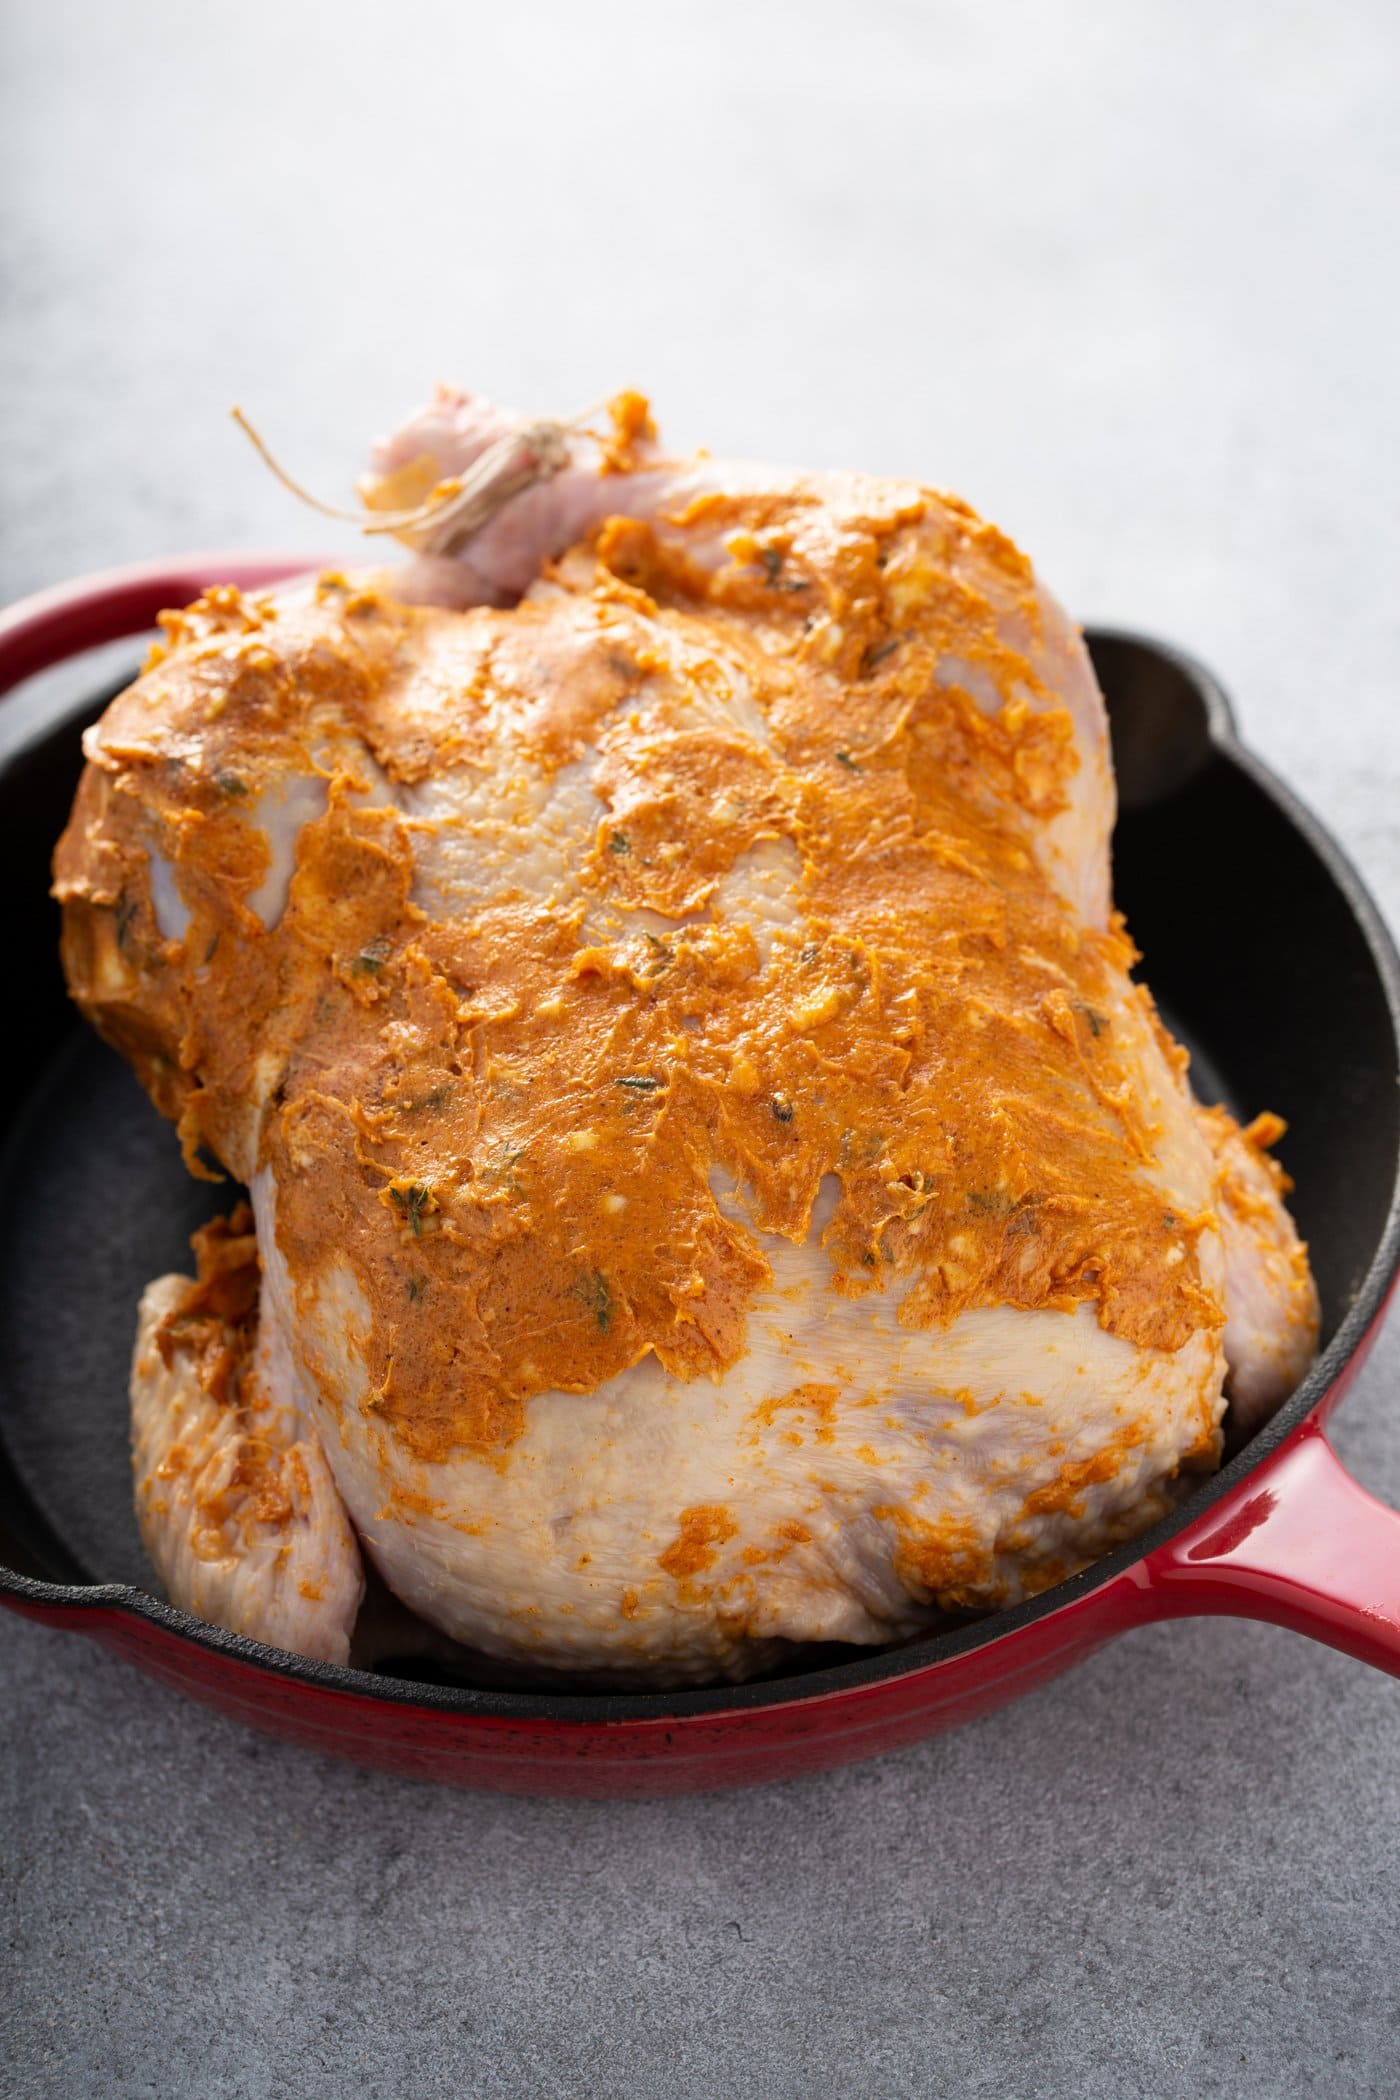 A whole chicken that has been prepped for roasting. You can see the spiced rub that has been rubbed into the chicken. The chicken is in a red Dutch Oven.